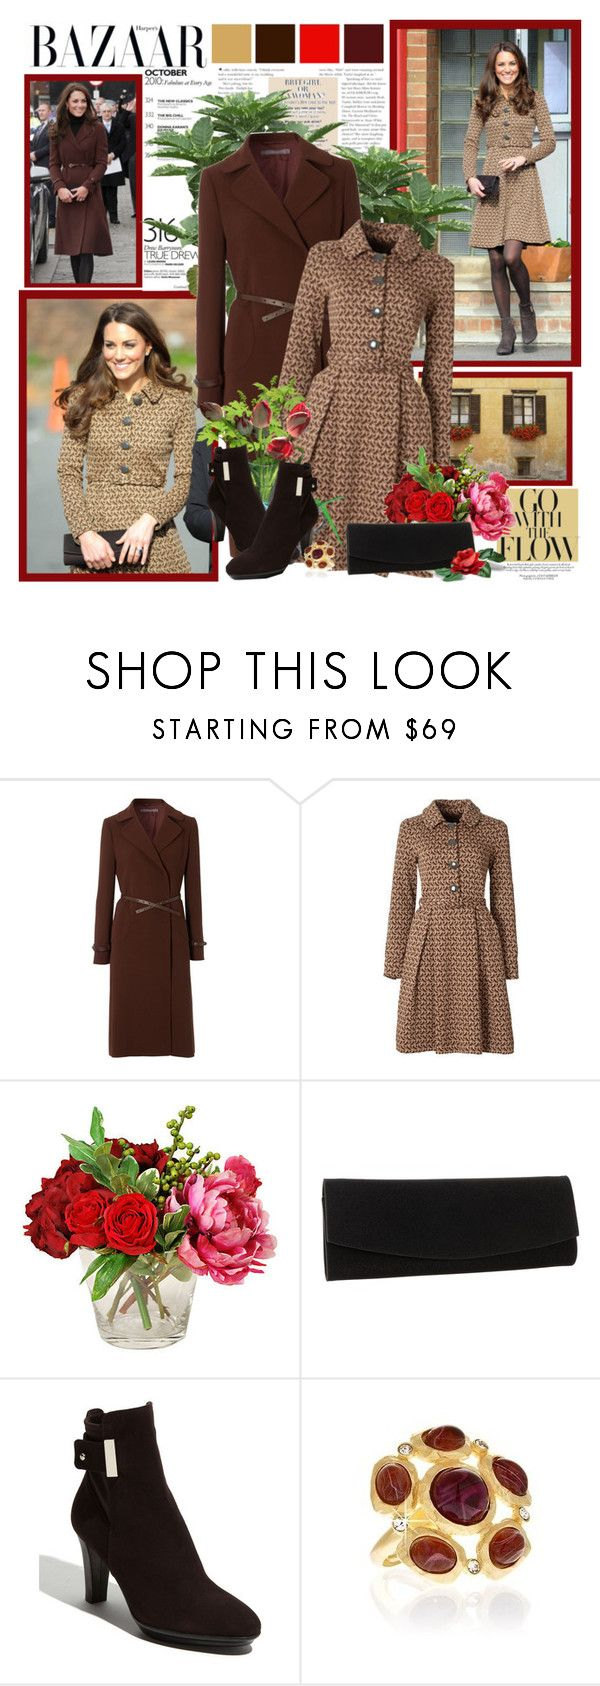 """Go with the flow - Kate Middleton"" by helleka ❤ liked on Polyvore featuring Orla Kiely, Hobbs, Stuart Weitzman, Aquatalia by Marvin K., Kenneth Jay Lane, suede ankle boots, cocktail rings, shirt dresses, flared coats and clutches"